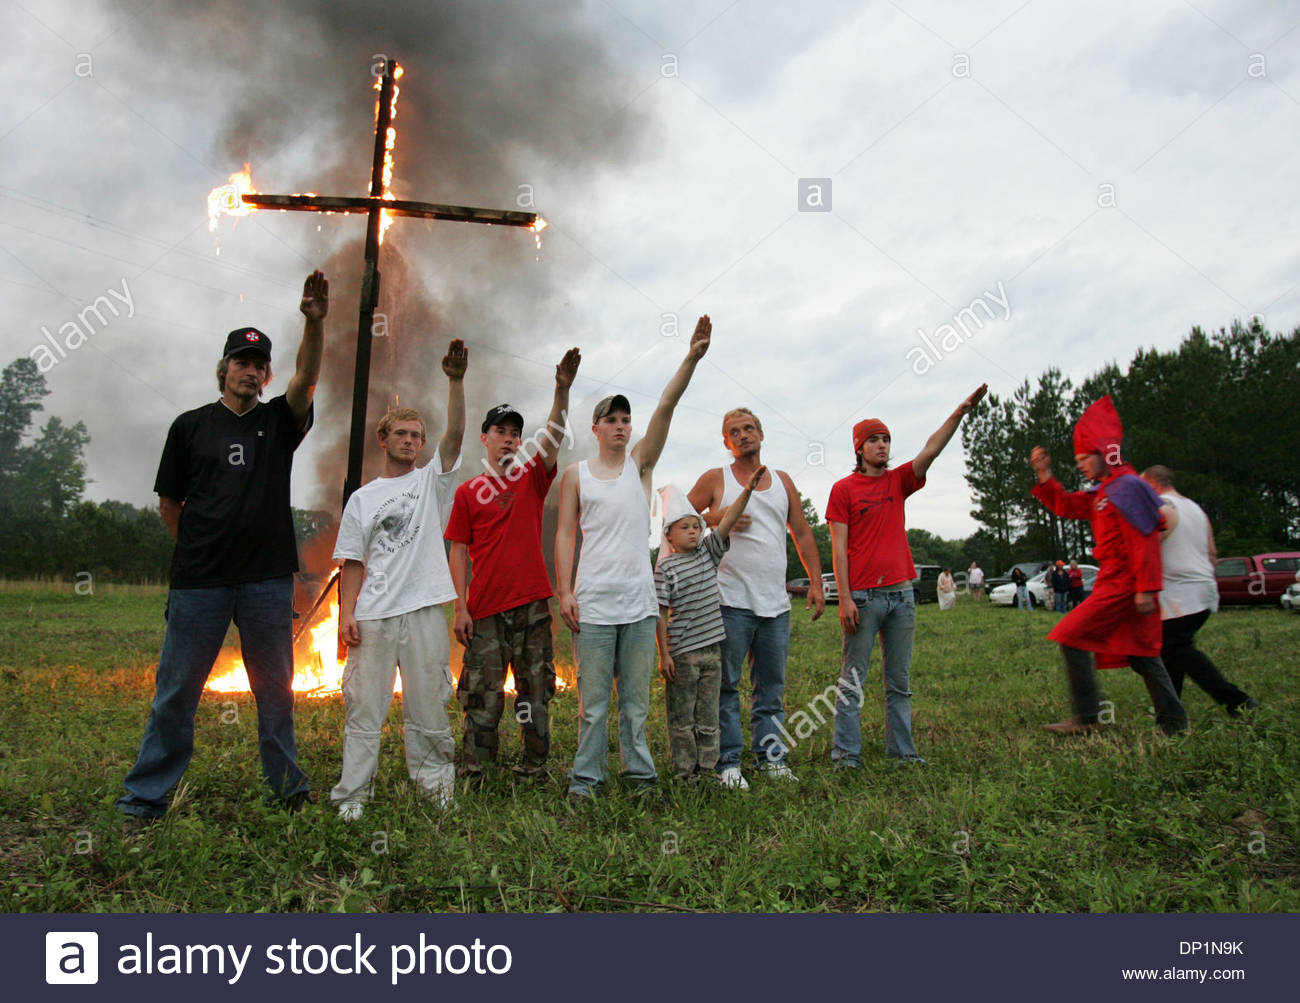 May 06, 2006; Red Bay, AL, USA; Newest members of National Knights of the Ku Klux Klan at their first cross-lighting Stock Photo